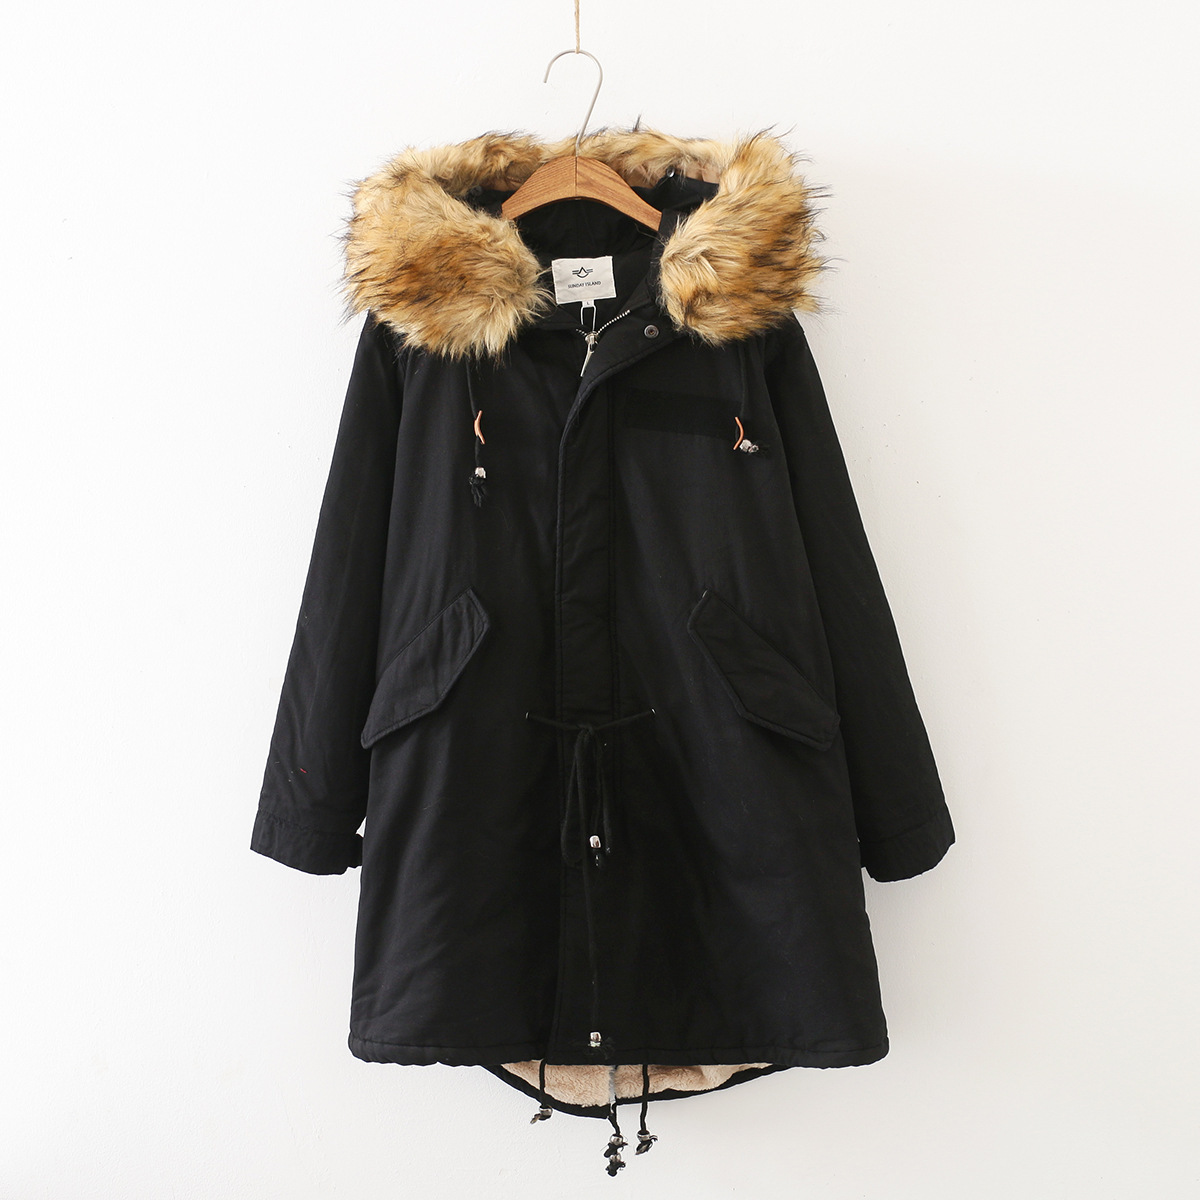 Genuine Fur Collar Long Hooded Plus Velvet Cotton Coat Women's Winter New Style Loose-Fit Versatile Cotton-padded Clothes Workwe